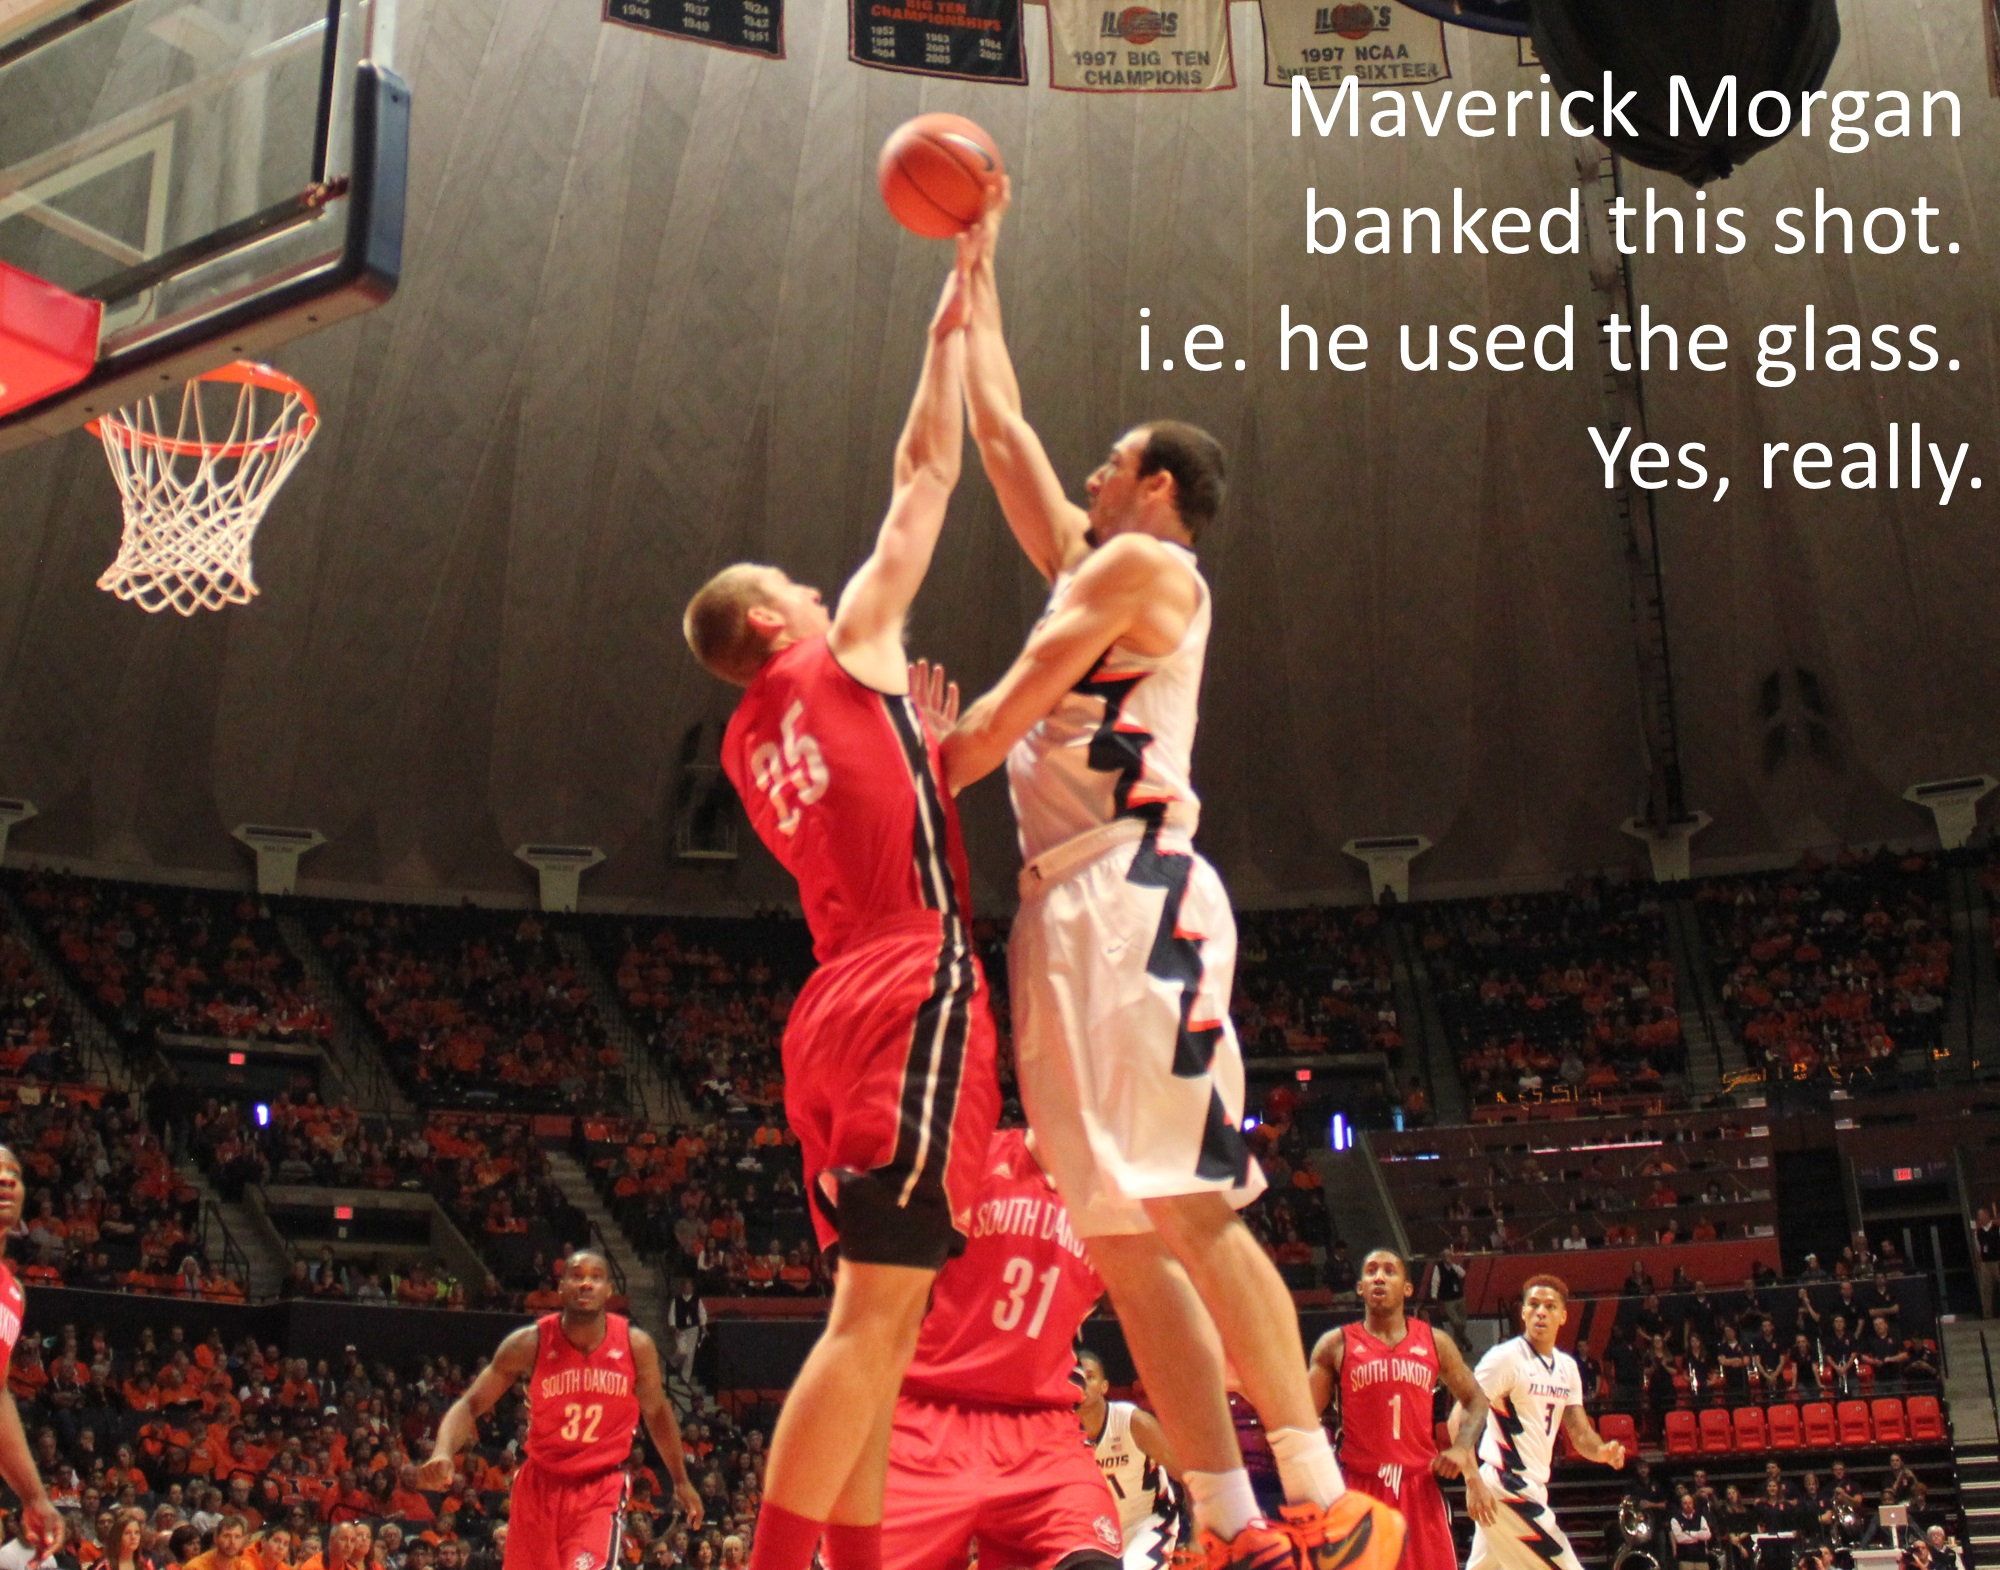 Maverick Morgan banked this shot. i.e. he used the glass. Yes, really